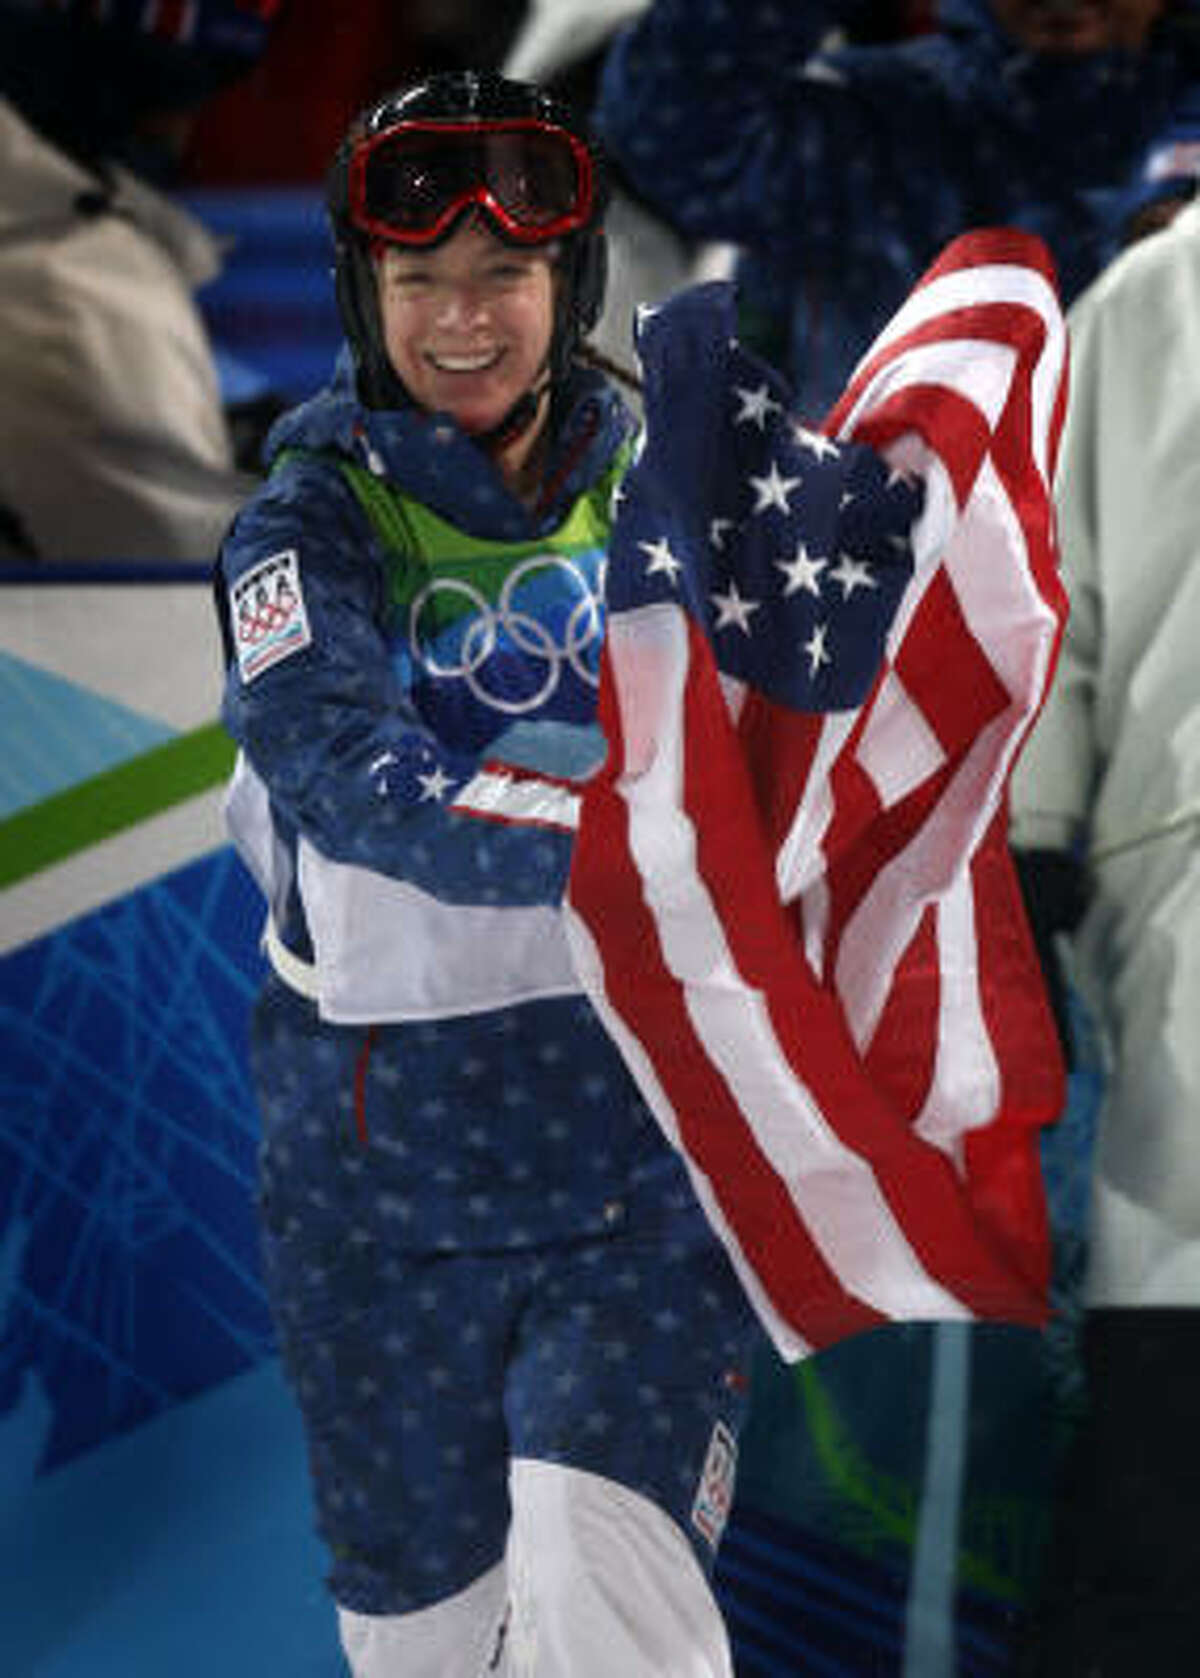 Hannah Kearney waves the American flag after capturing the gold medal in the women's mogul competition Saturday in West Vancouver, B.C.